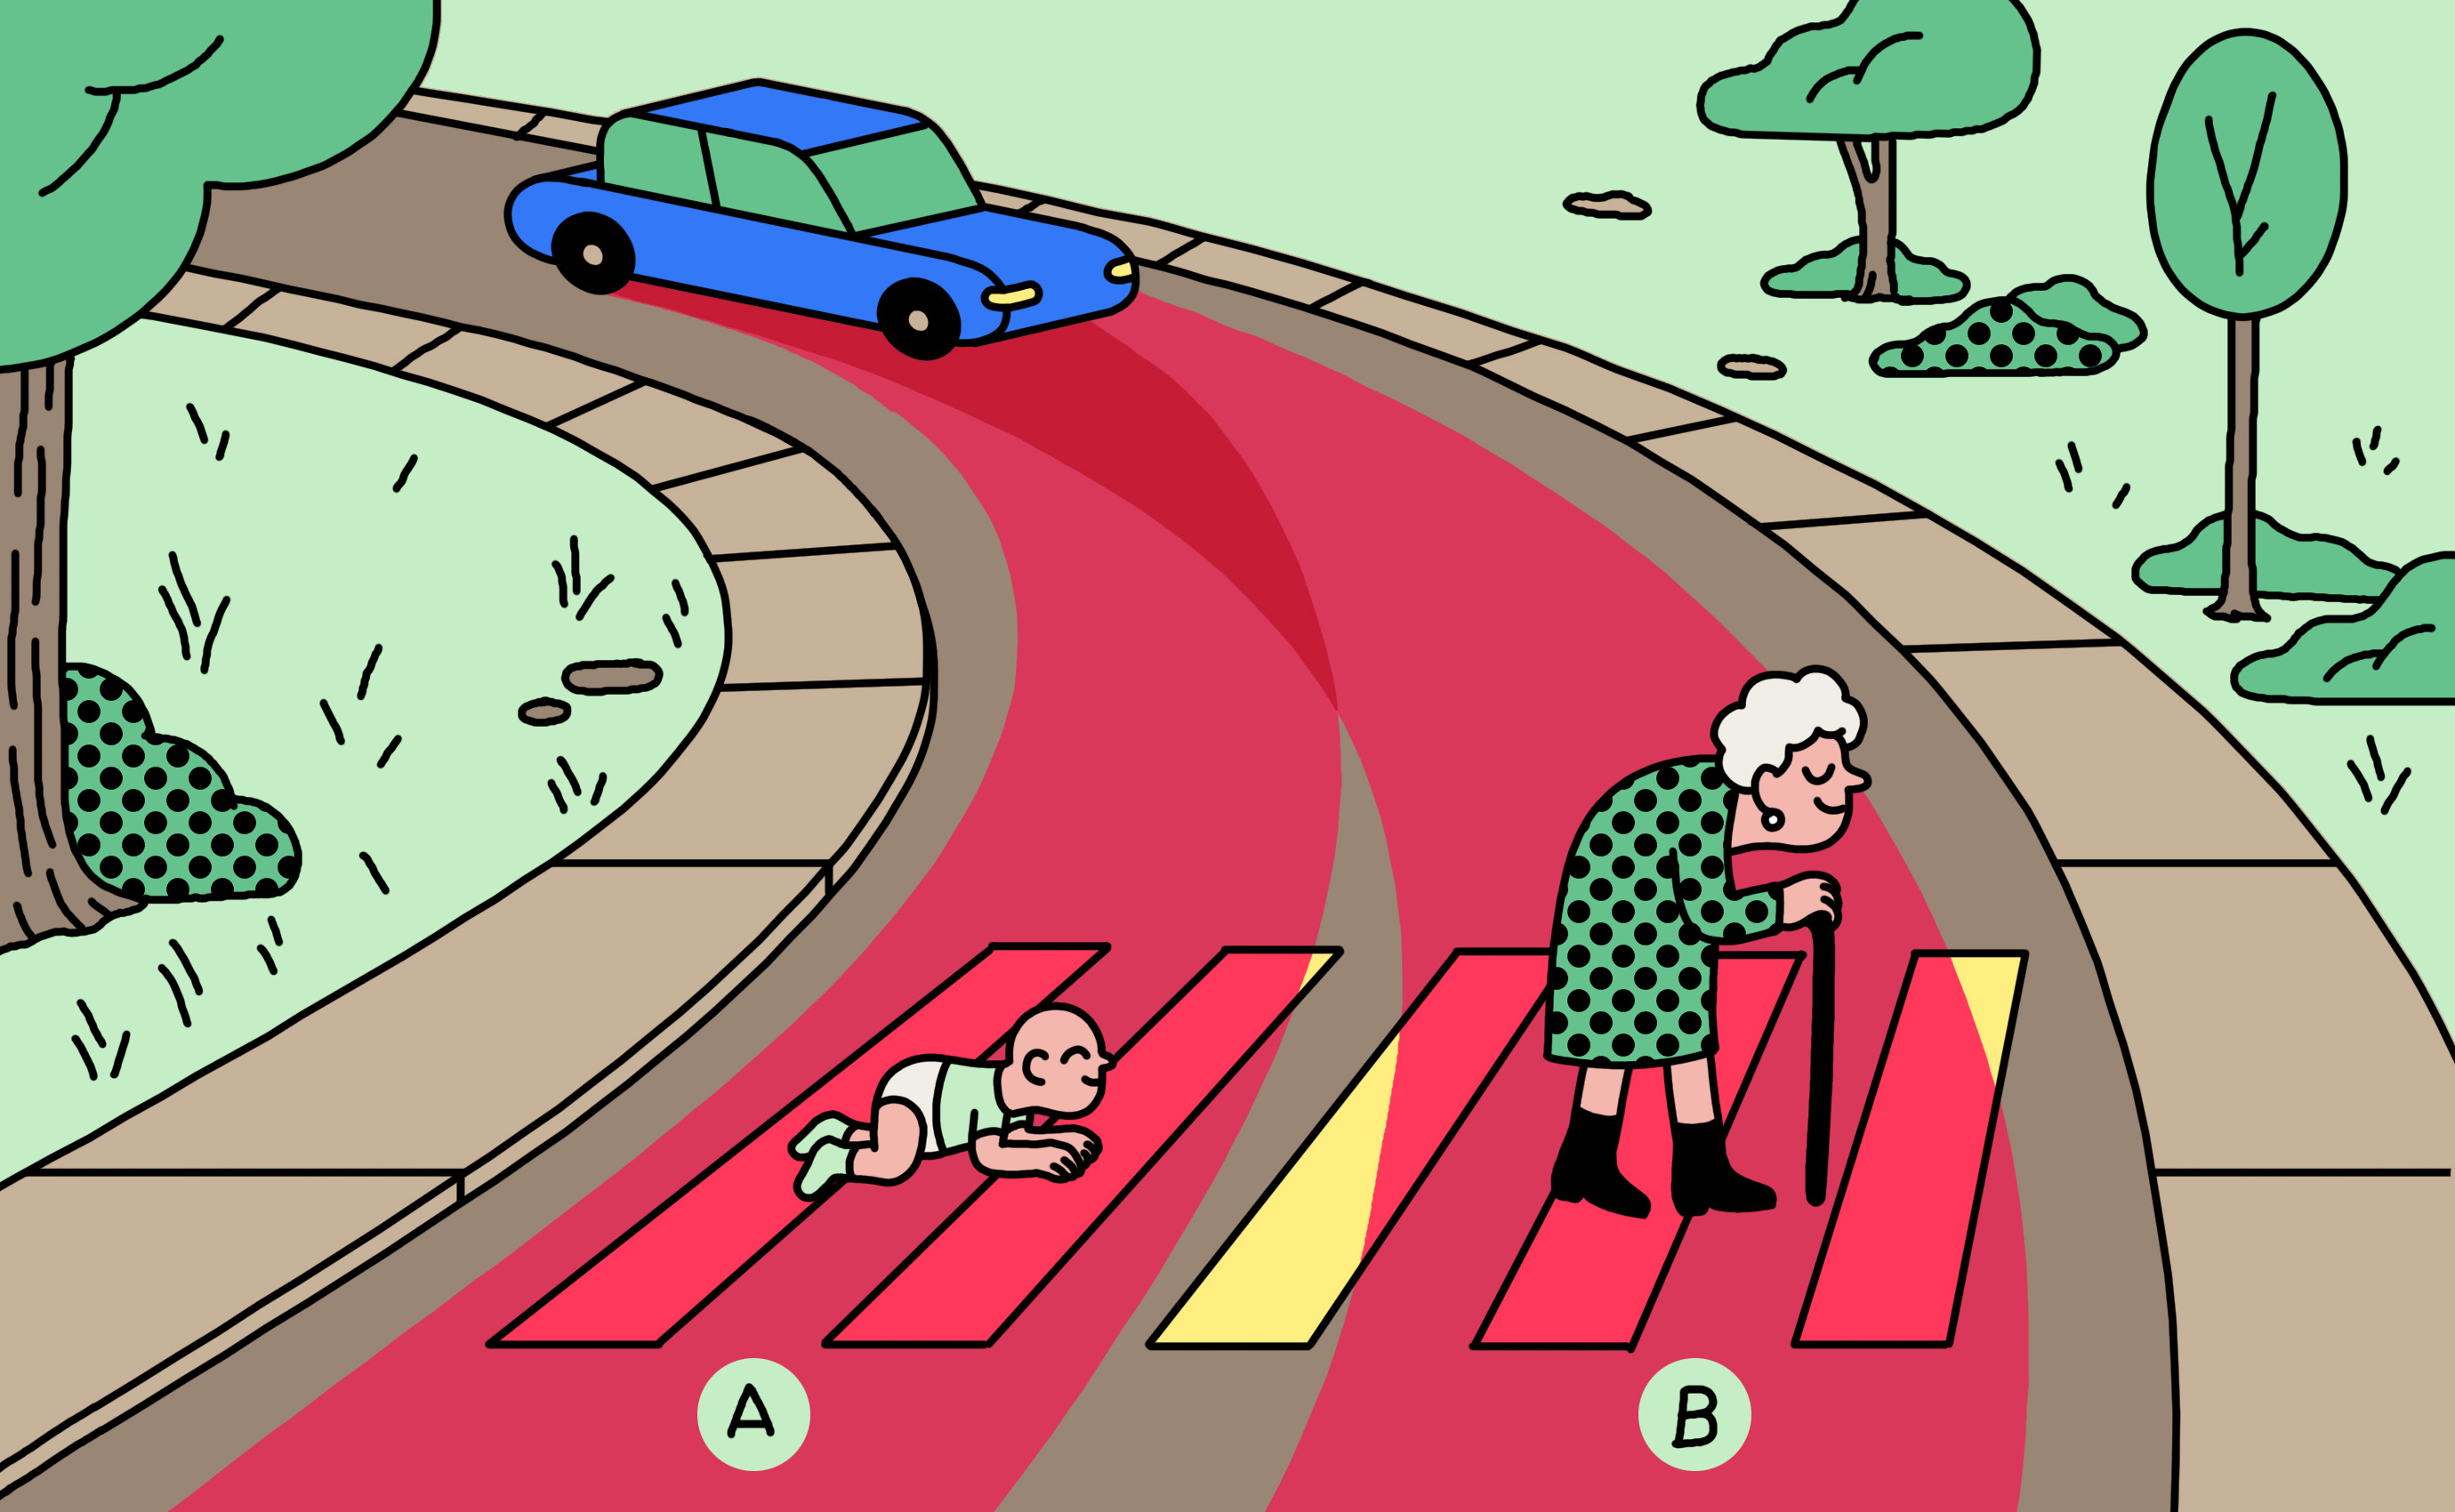 Should a self-driving car kill the baby or the grandma